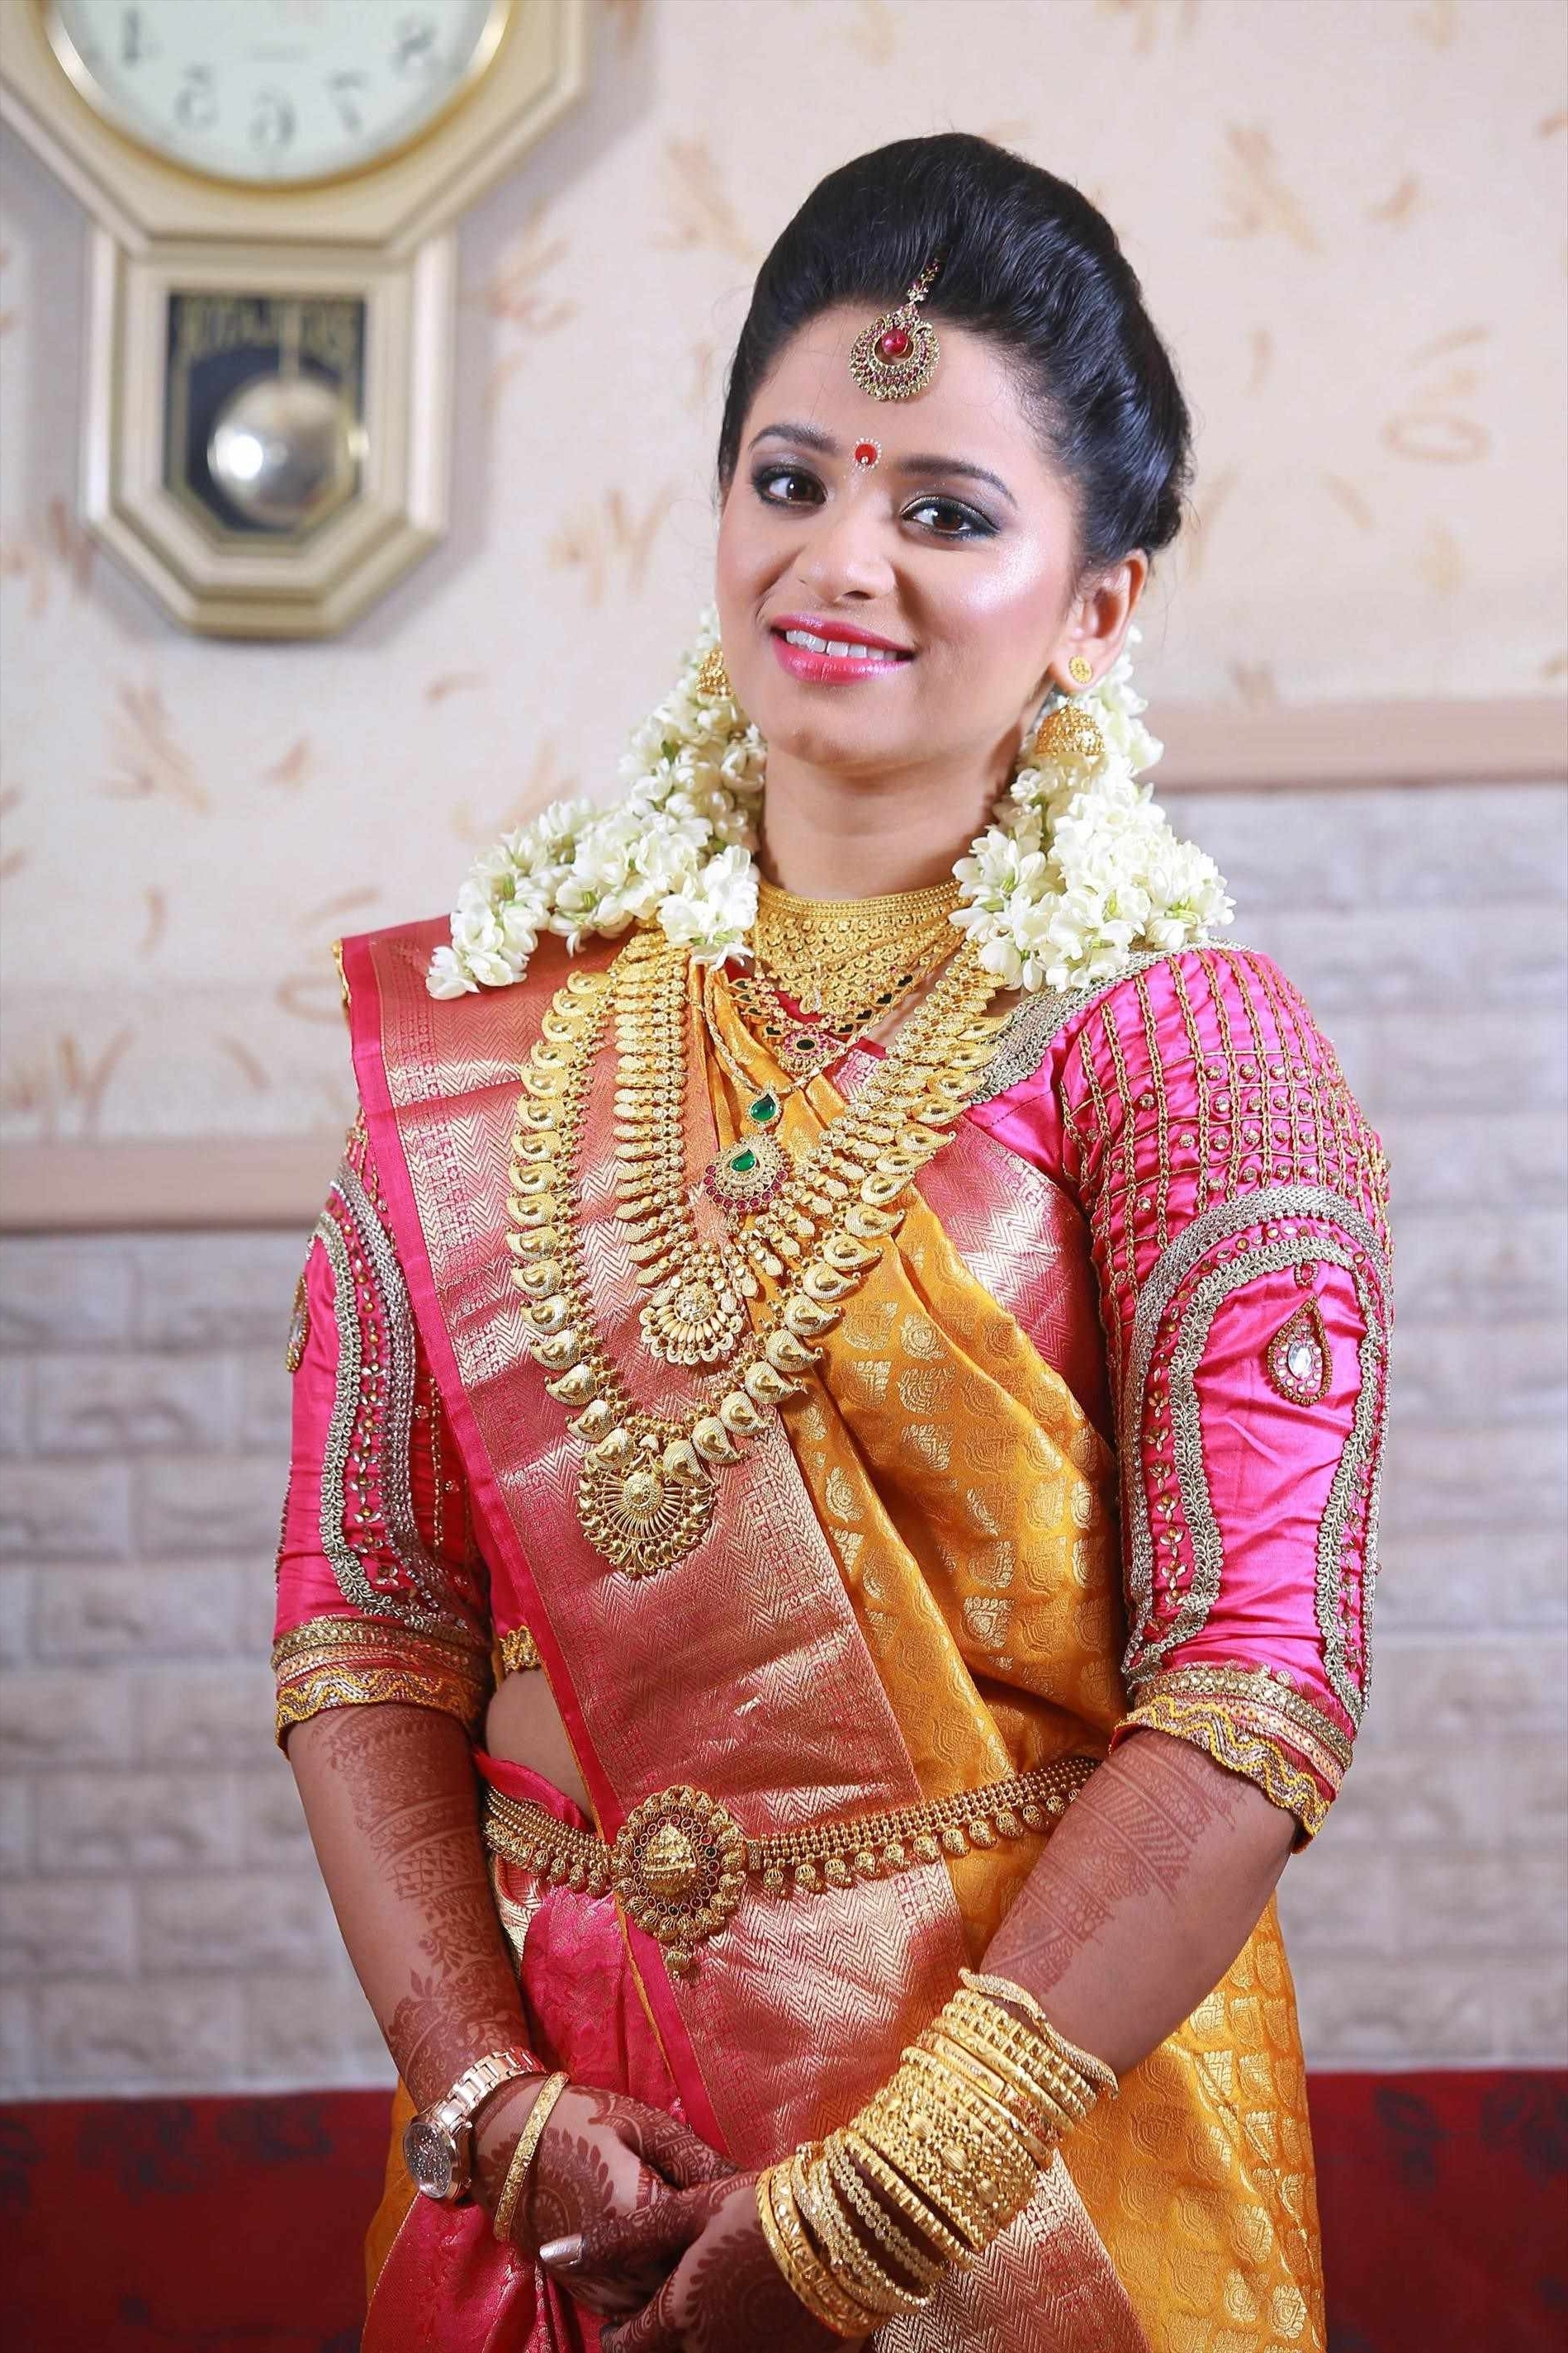 Amusing Wedding Hairstyle For South Indian Bride On More Hairstyle With 2018 South Indian Wedding Hairstyles (View 6 of 15)